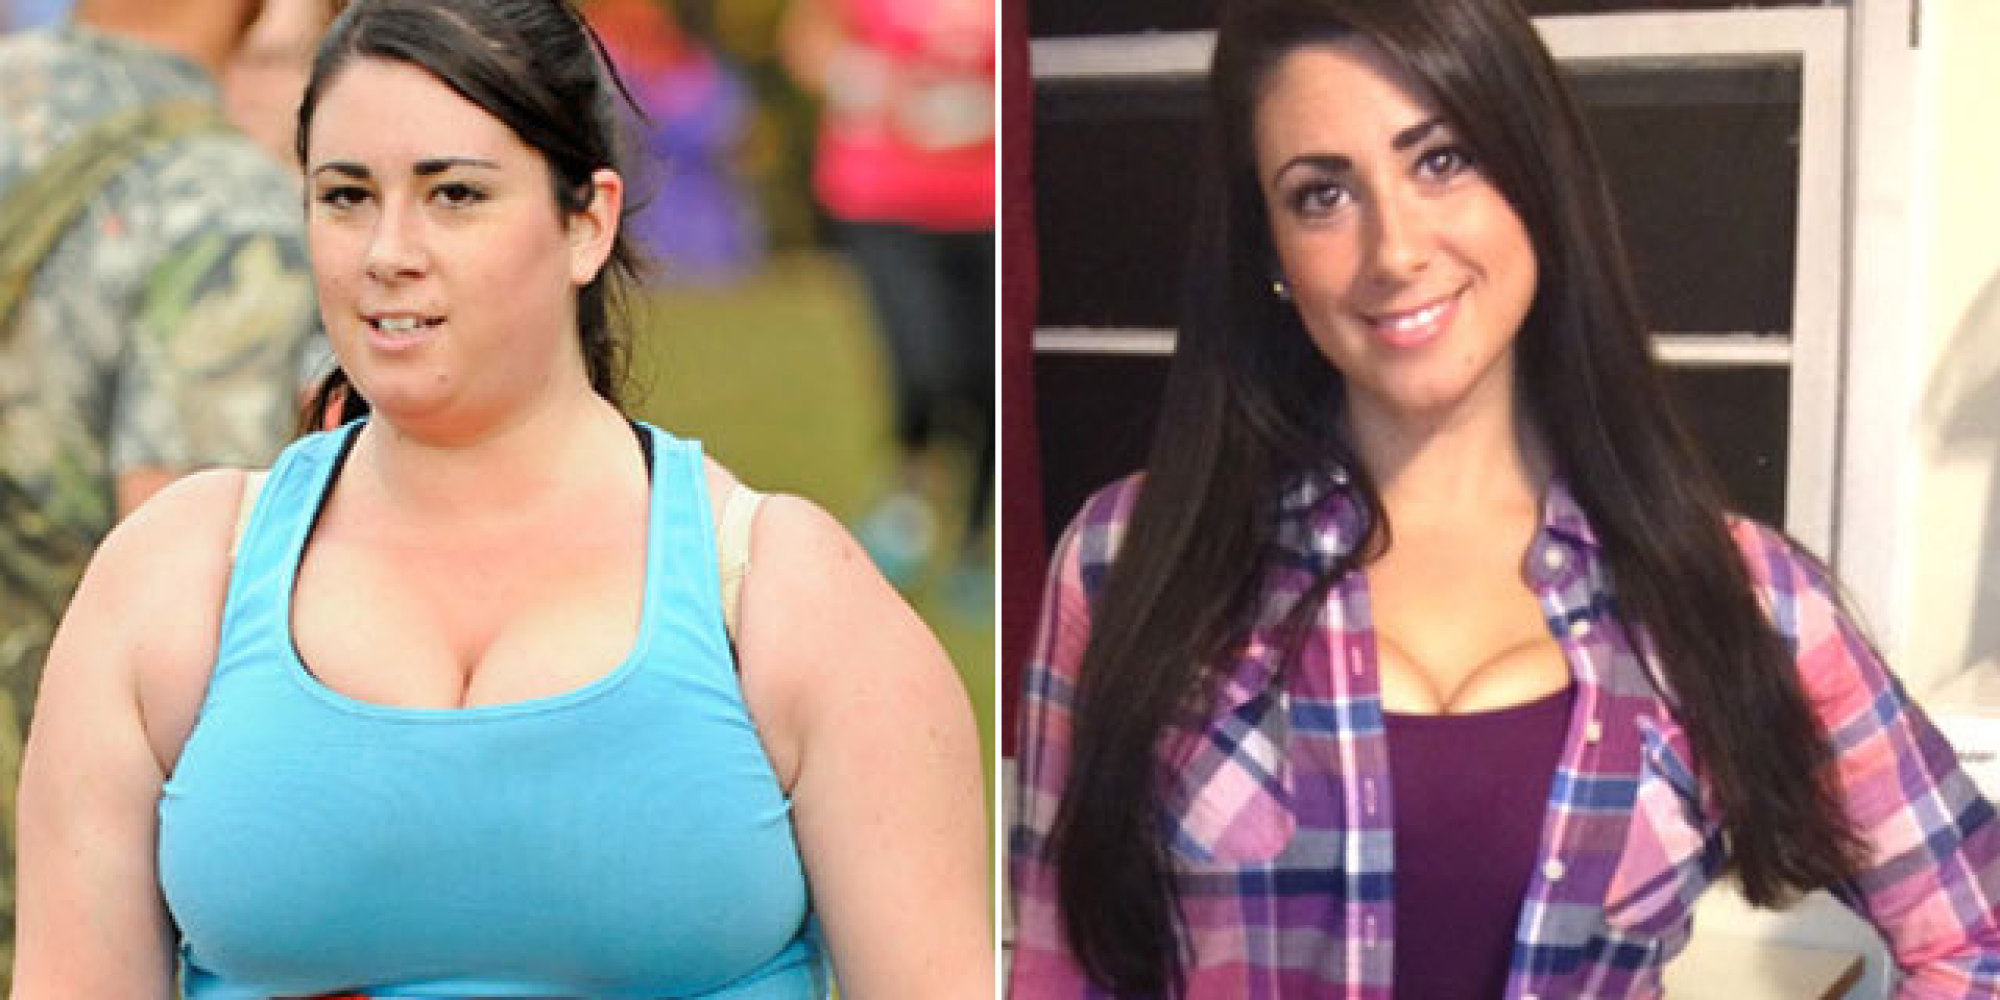 After Banishing All Excuses Jacquelyn Moody Lost 71 Pounds